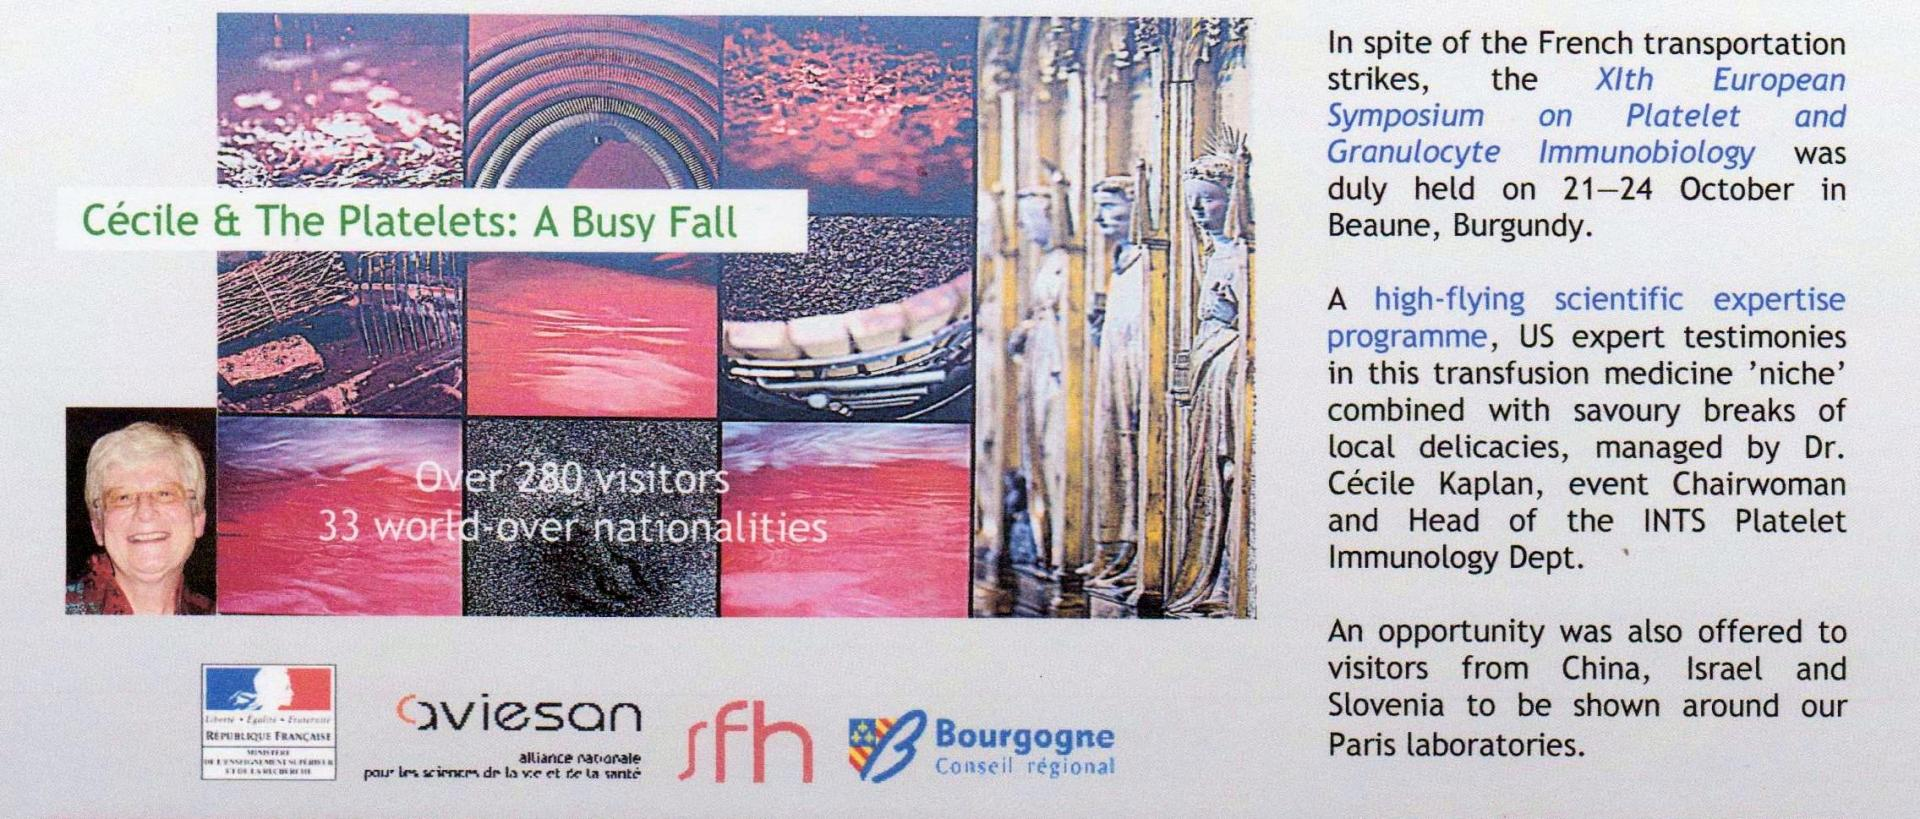 Beaune newsletter article